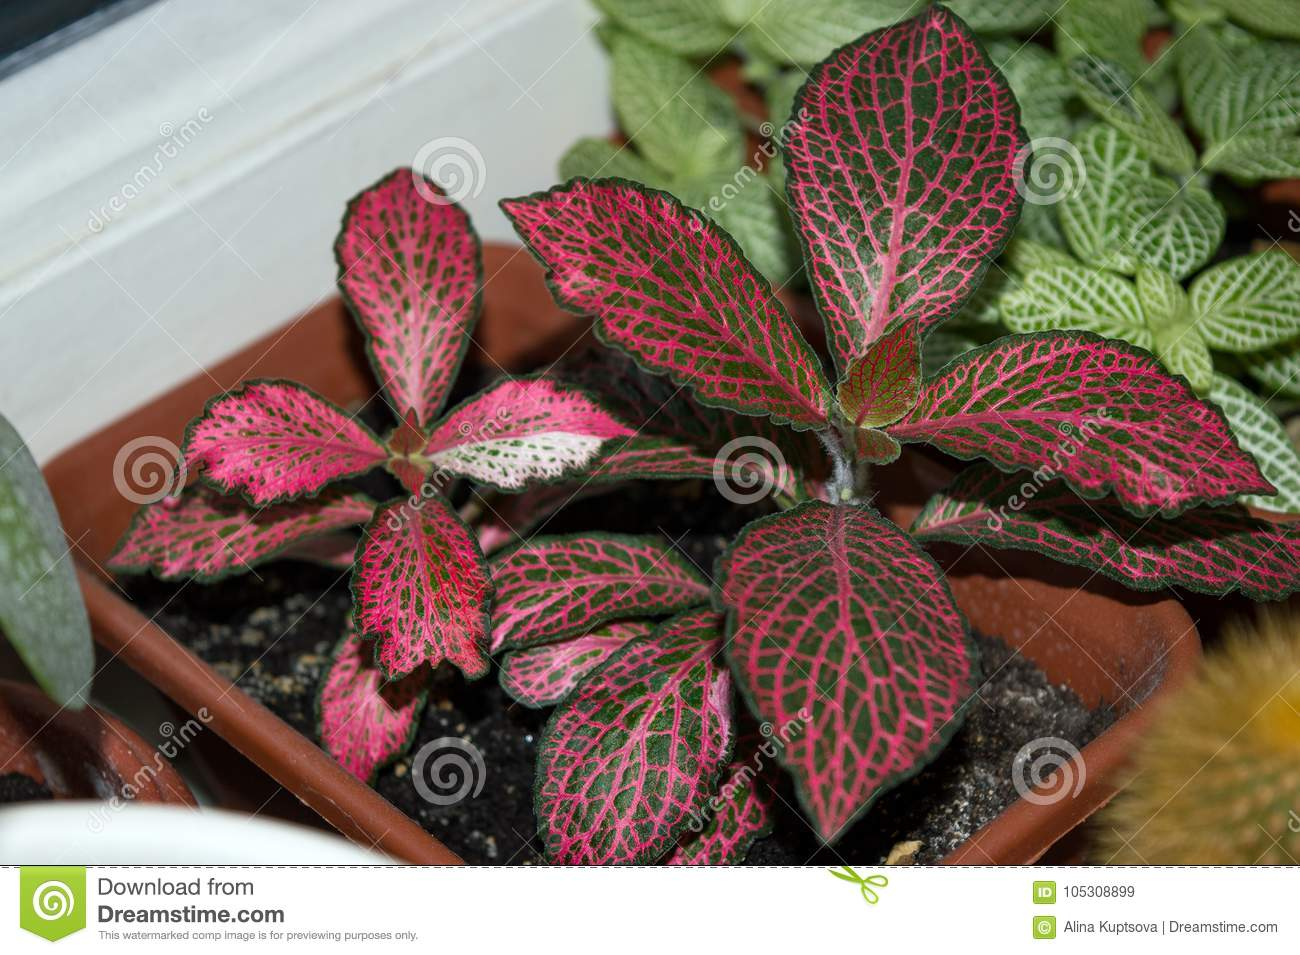 -plant With Red Veins Growing On Window Sill Stock ... on red foliage flowers, red foliage bushes, red foliage grasses, red foliage annuals, red foliage hibiscus, common indoor houseplants, red foliage plants, red and green houseplants, red foliage perennials, red flowering houseplants, red foliage vines,